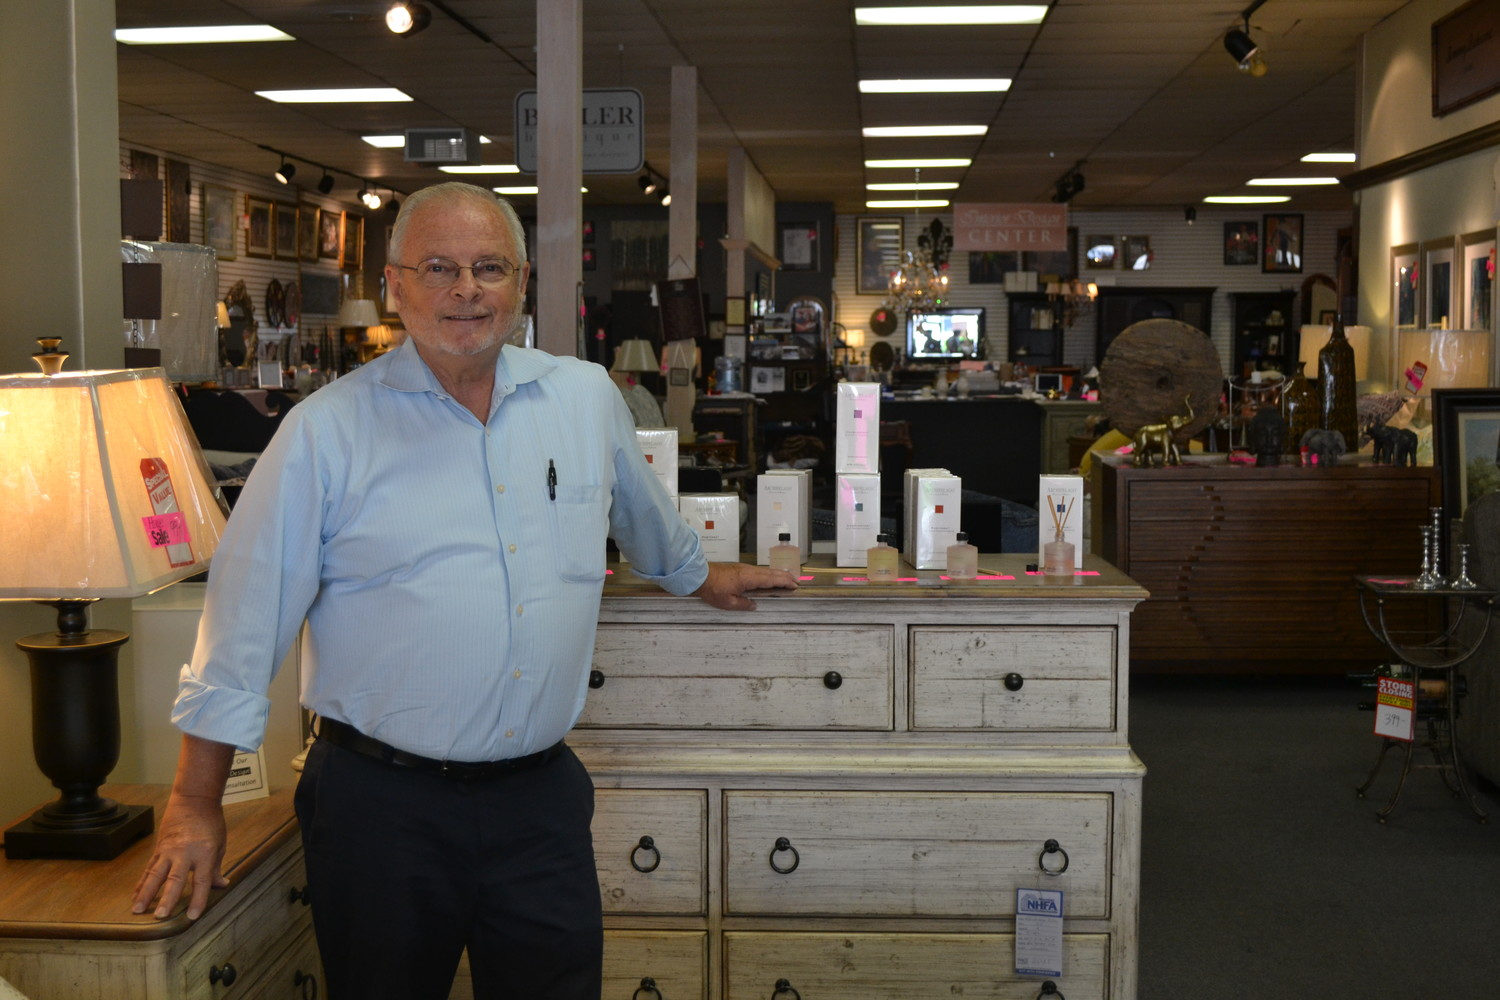 Store owner Brian Mercadante standing proudly in the store he has run for 28 years in Glen Cove.